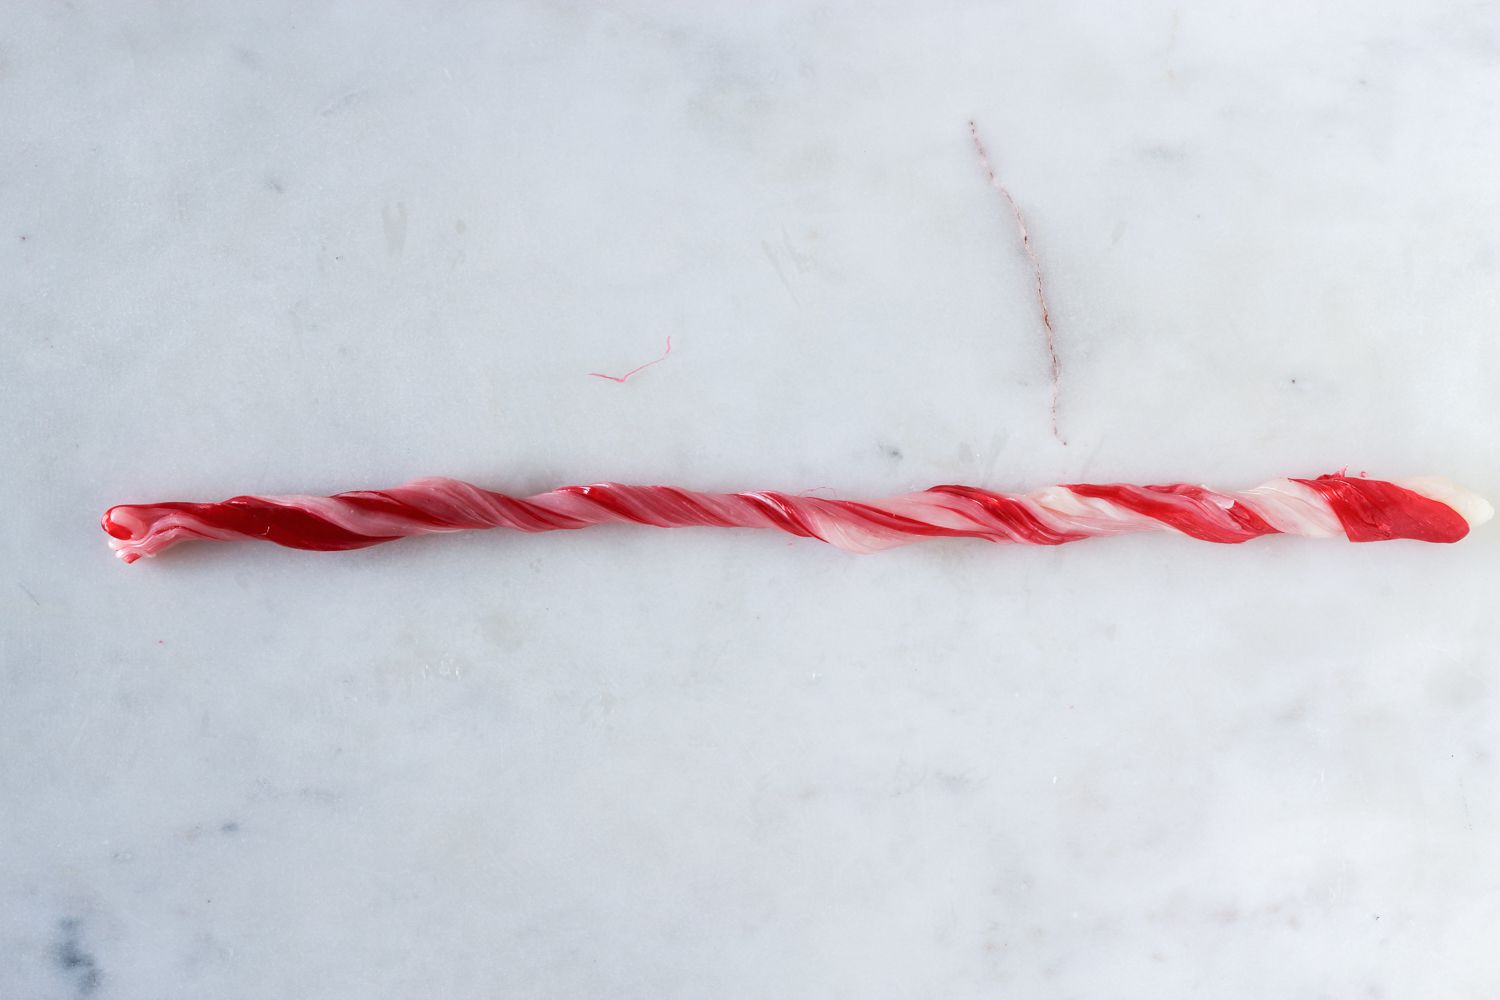 Twist and stretch the candy into a longer rope